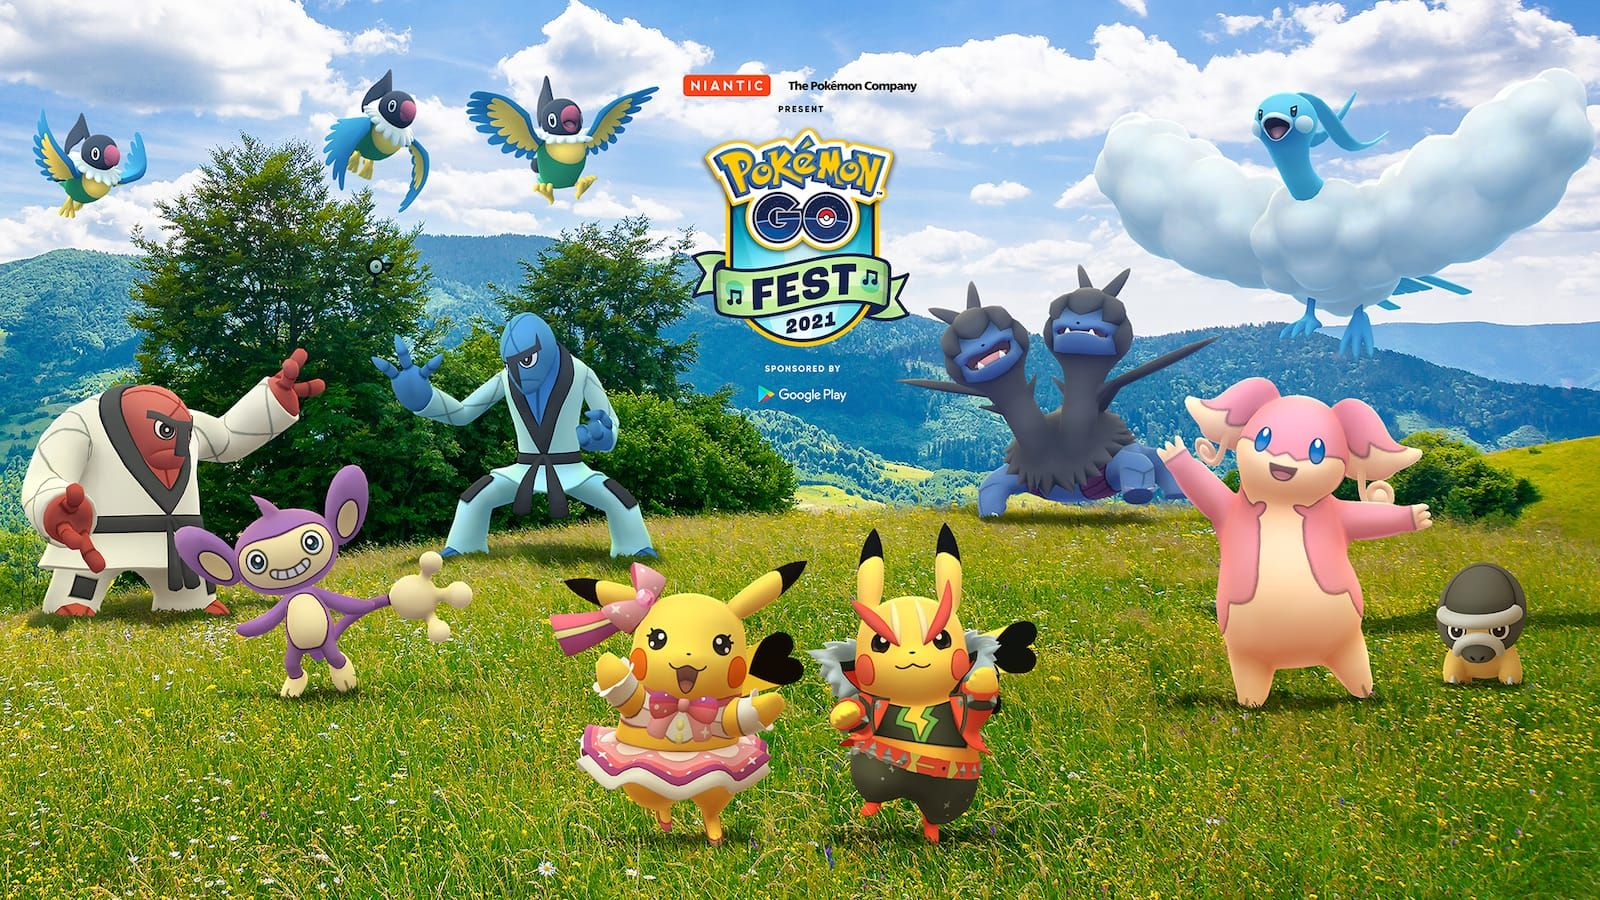 Pokémon GO Fest 2021: Your preparation guide for playing this weekend